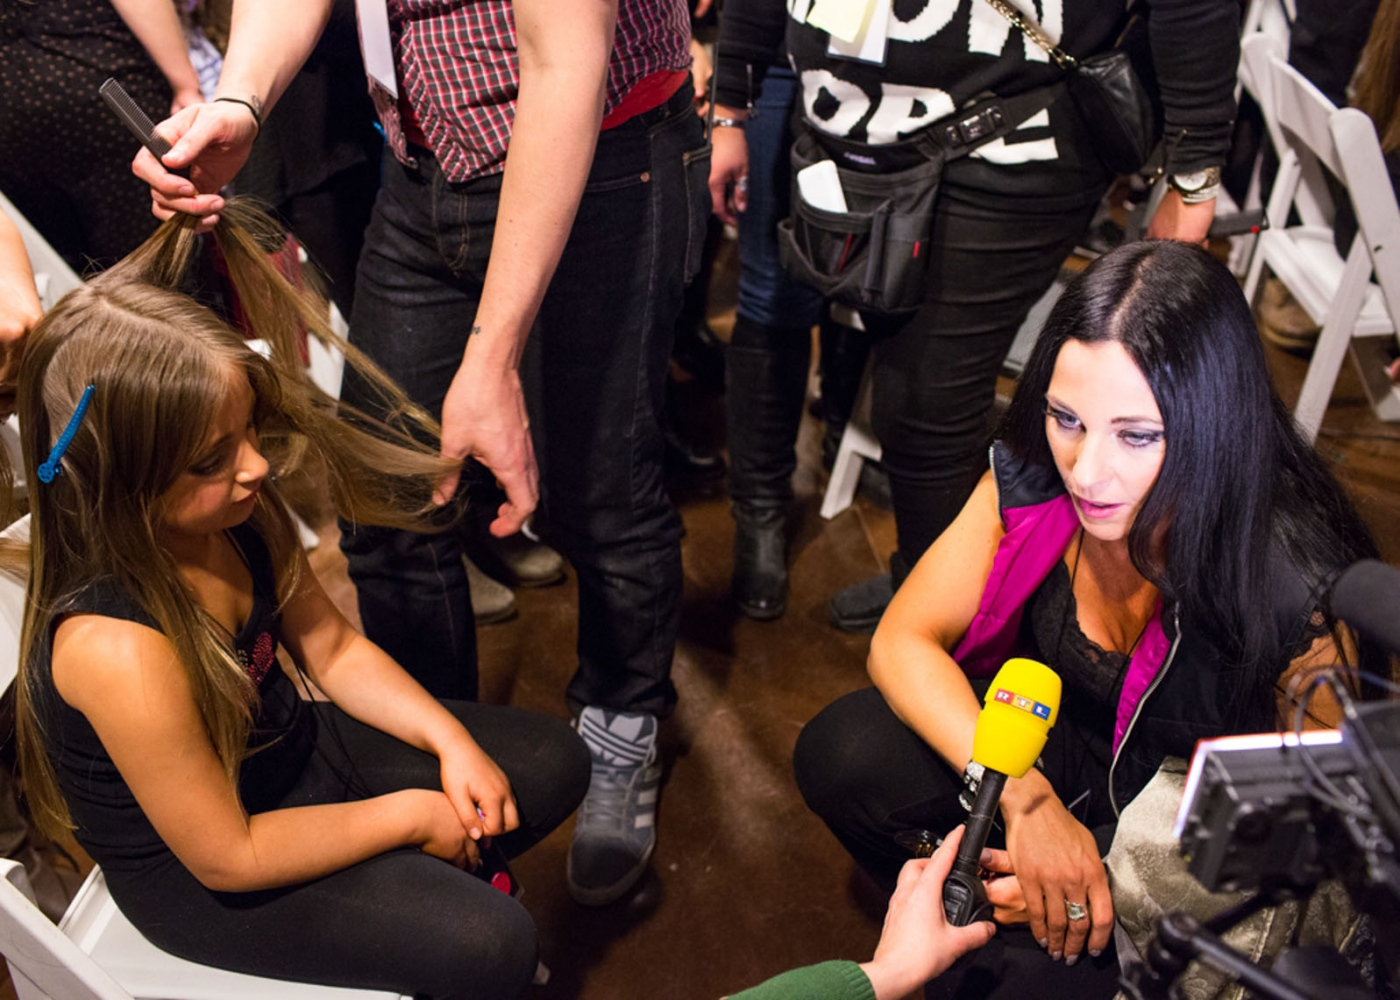 Susanna is interviewed backstage while Isabella gets her hair done at New York Fashion Week For Nido Magazine